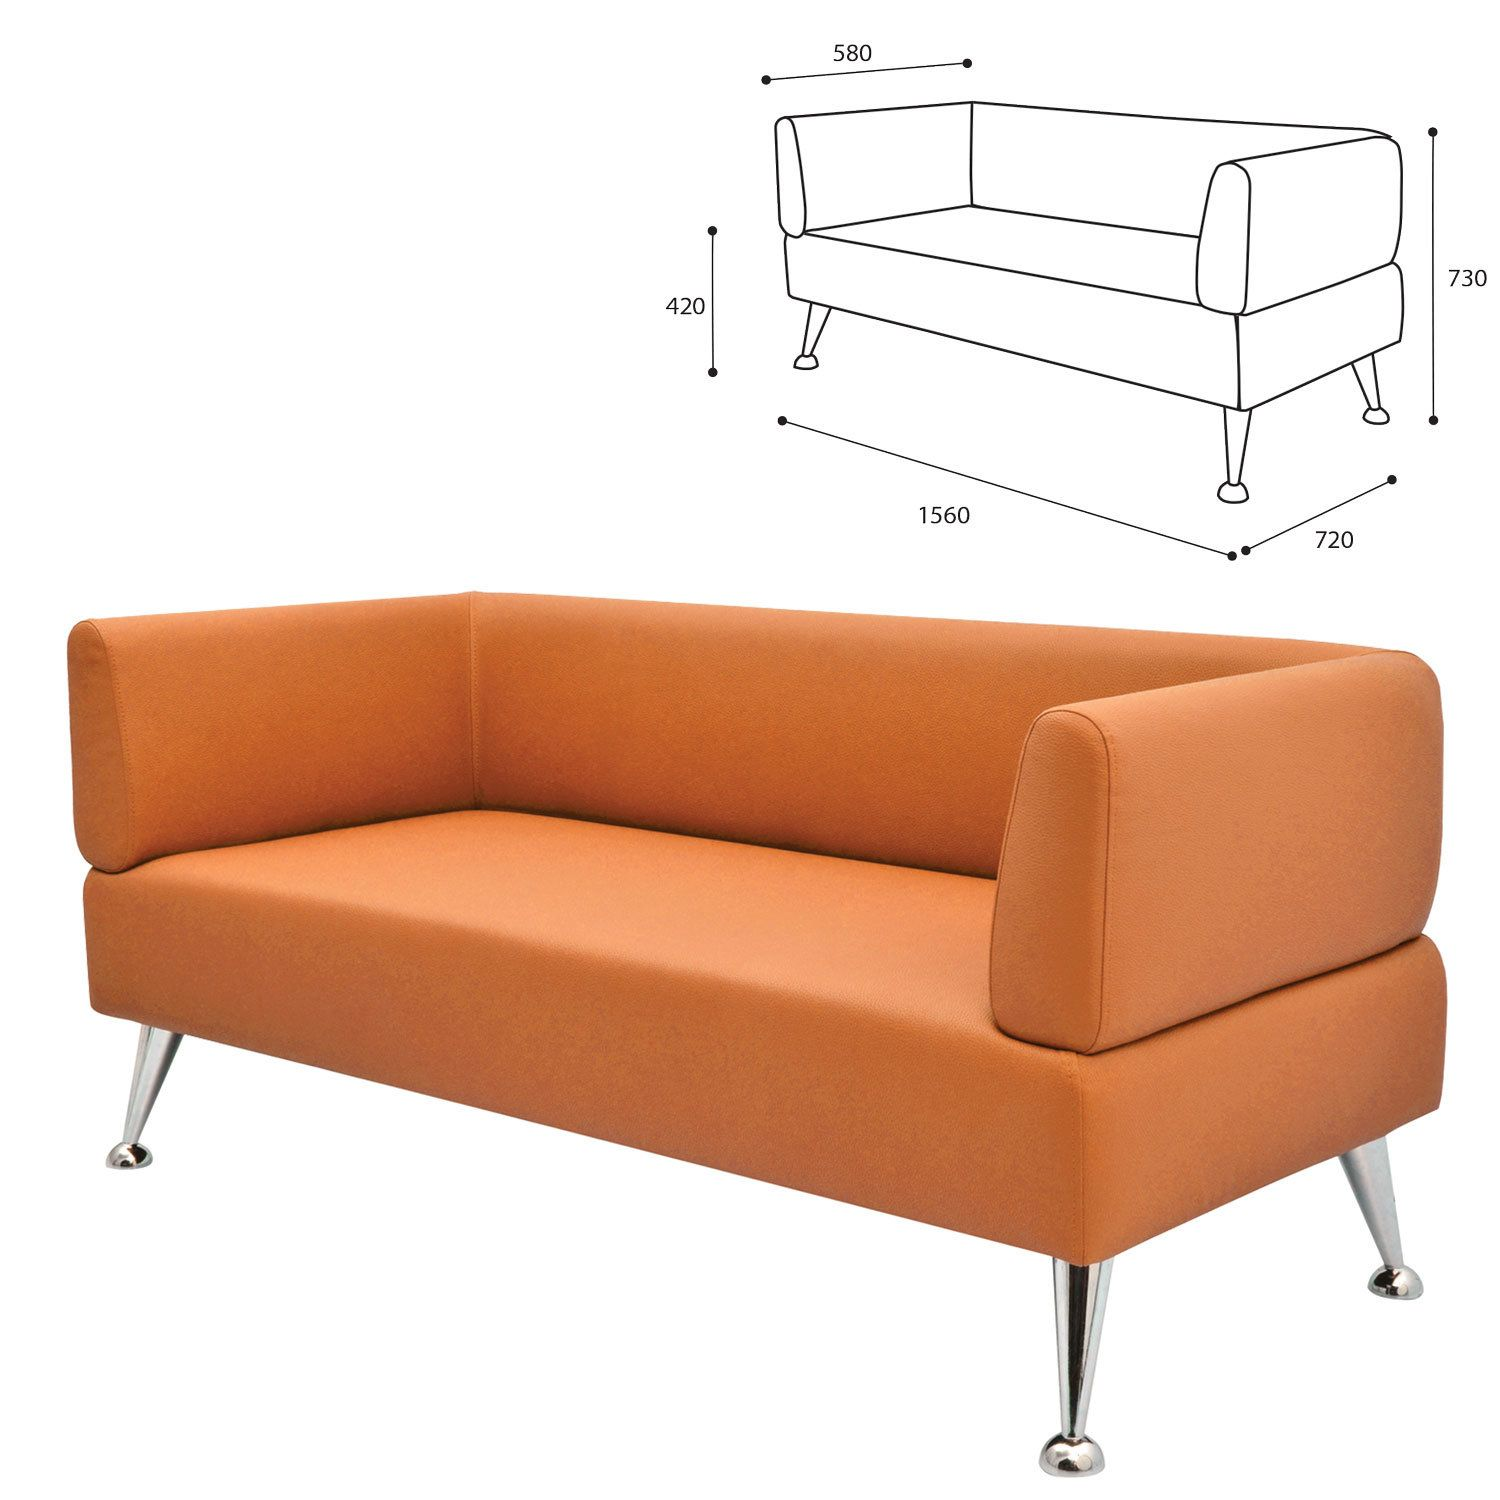 """GARTLEX / Soft three-seater sofa """"Nord"""", """"V-700"""", 1560x720x730 mm, with armrests, eco-leather, orange"""